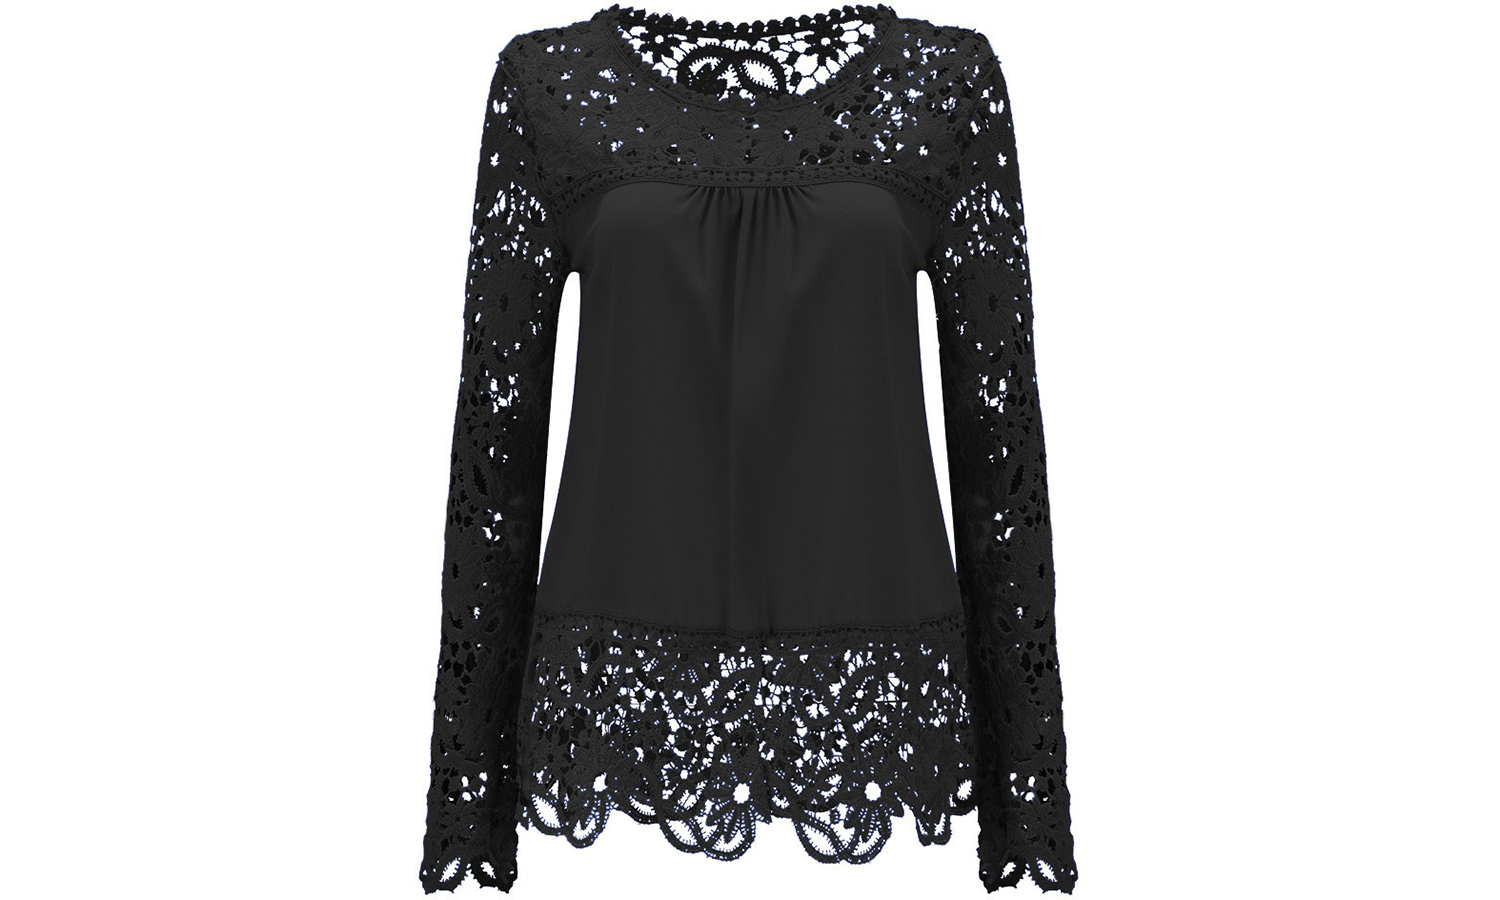 Floral Crochet Long-Sleeved Top From £7.99